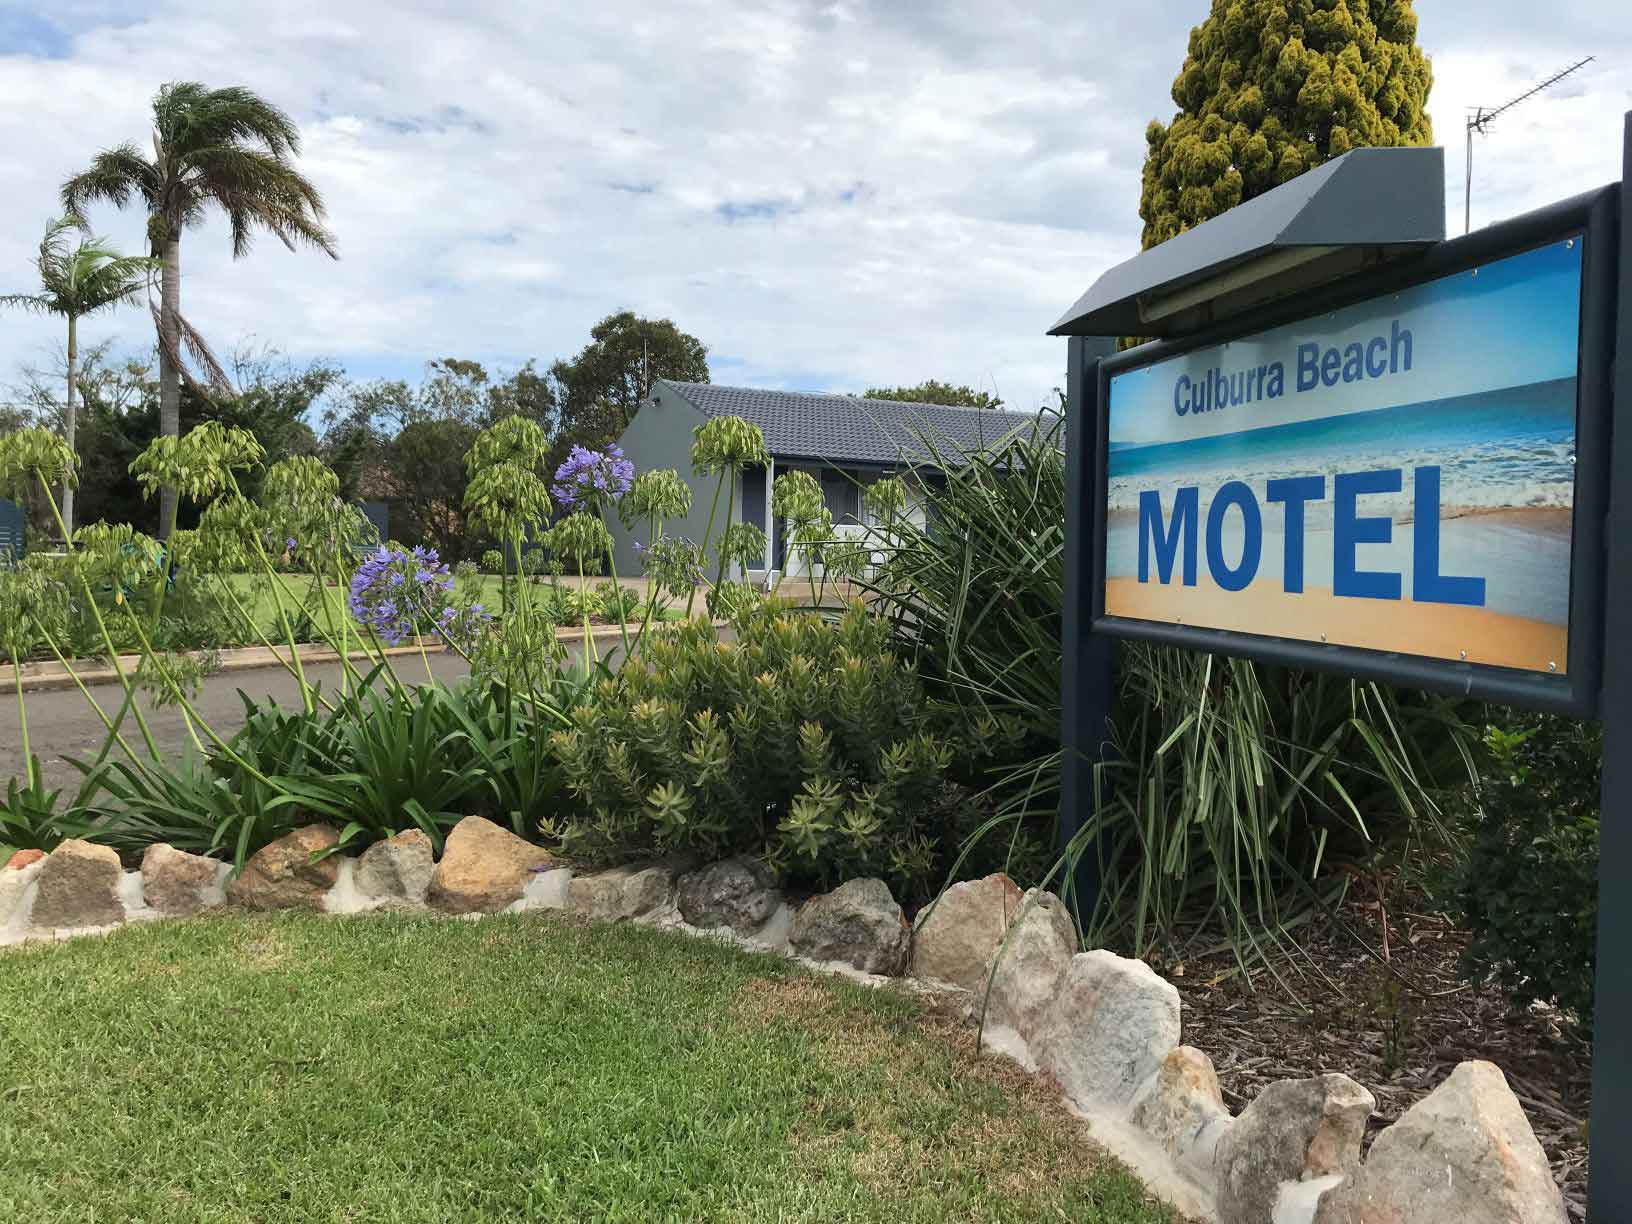 culburra-beach-motel